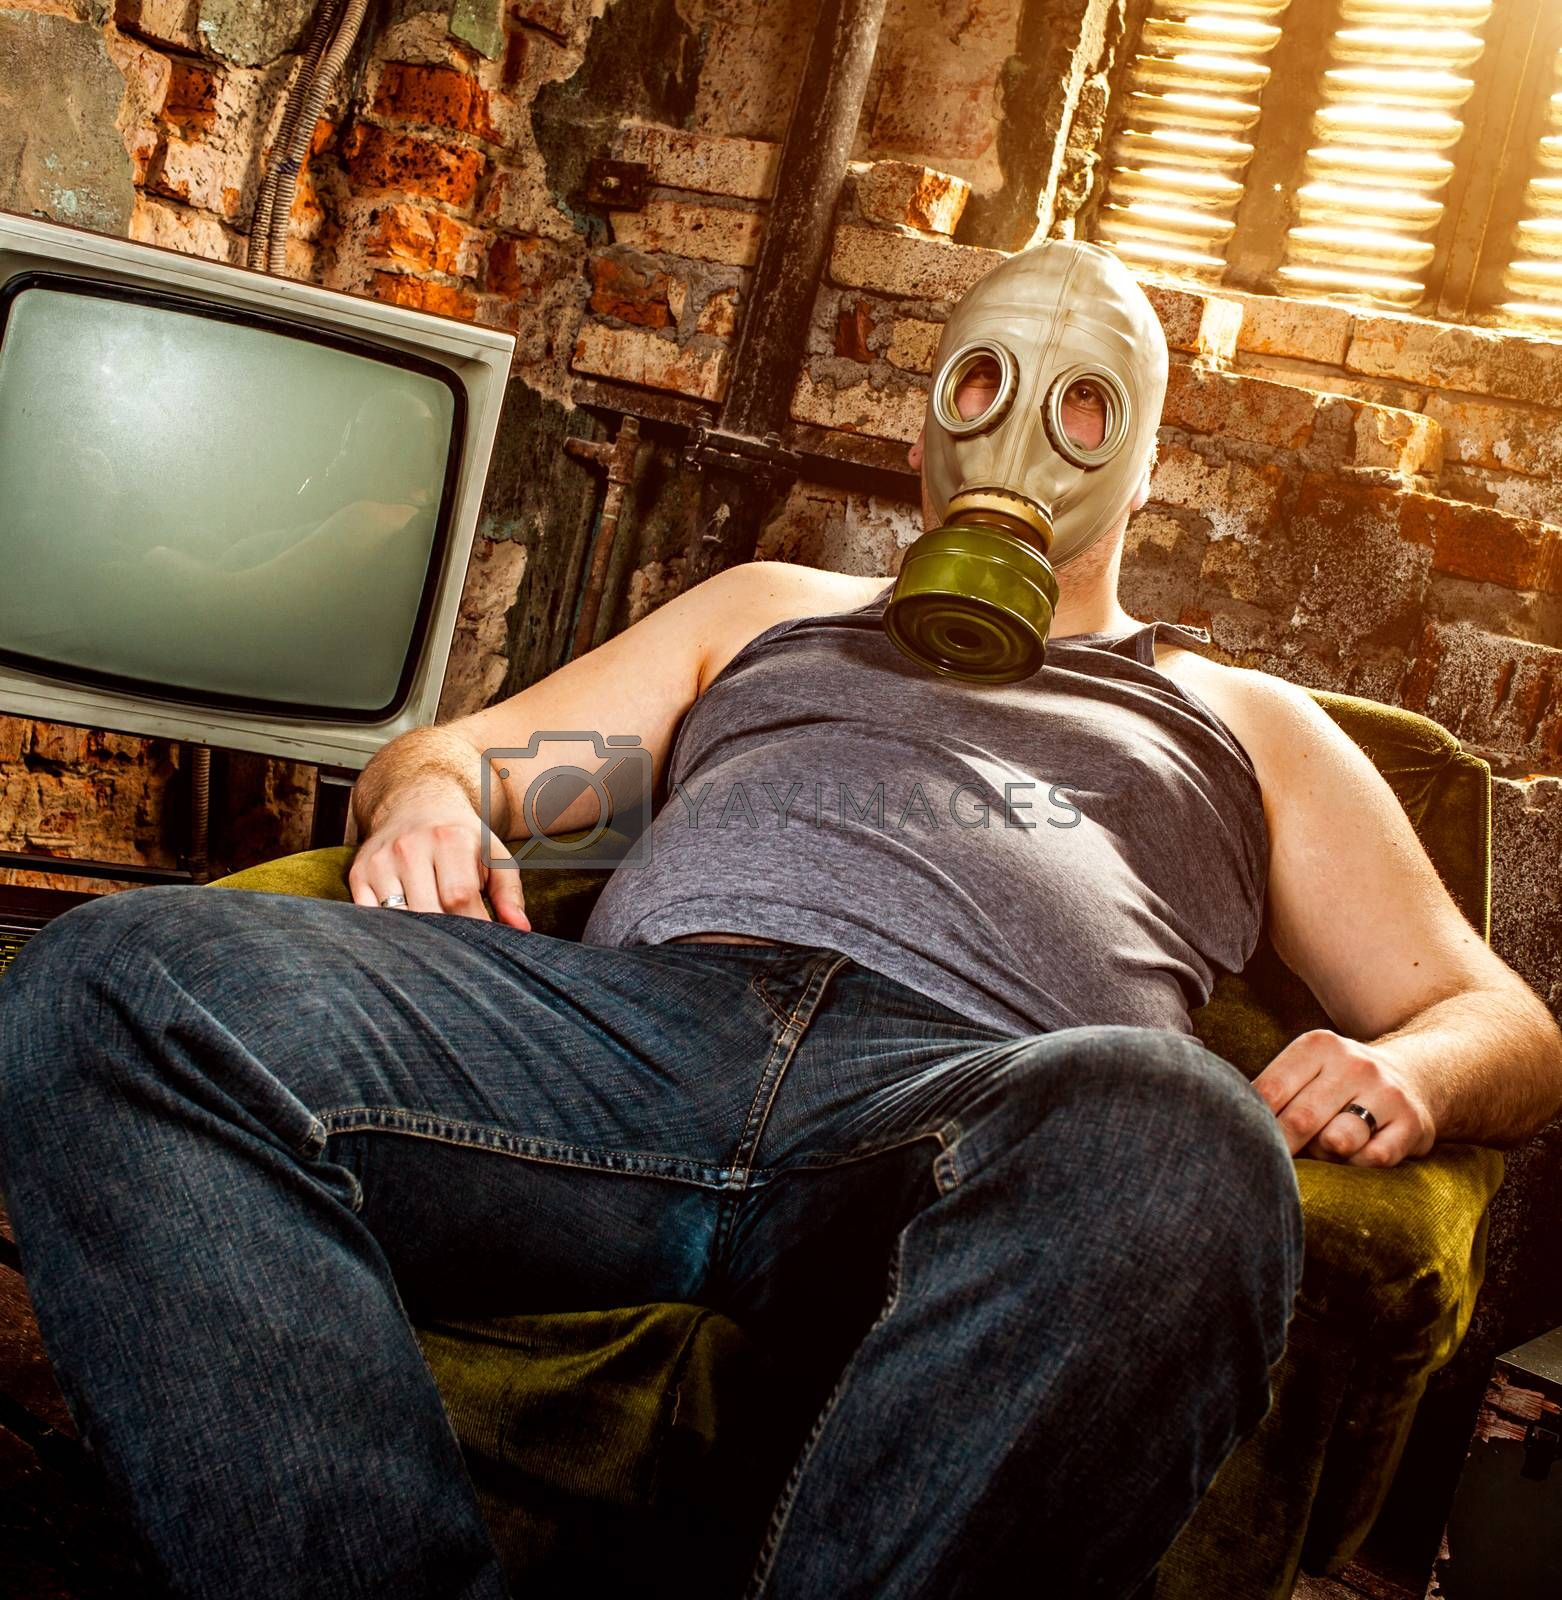 person in a gas mask sits on an armchair